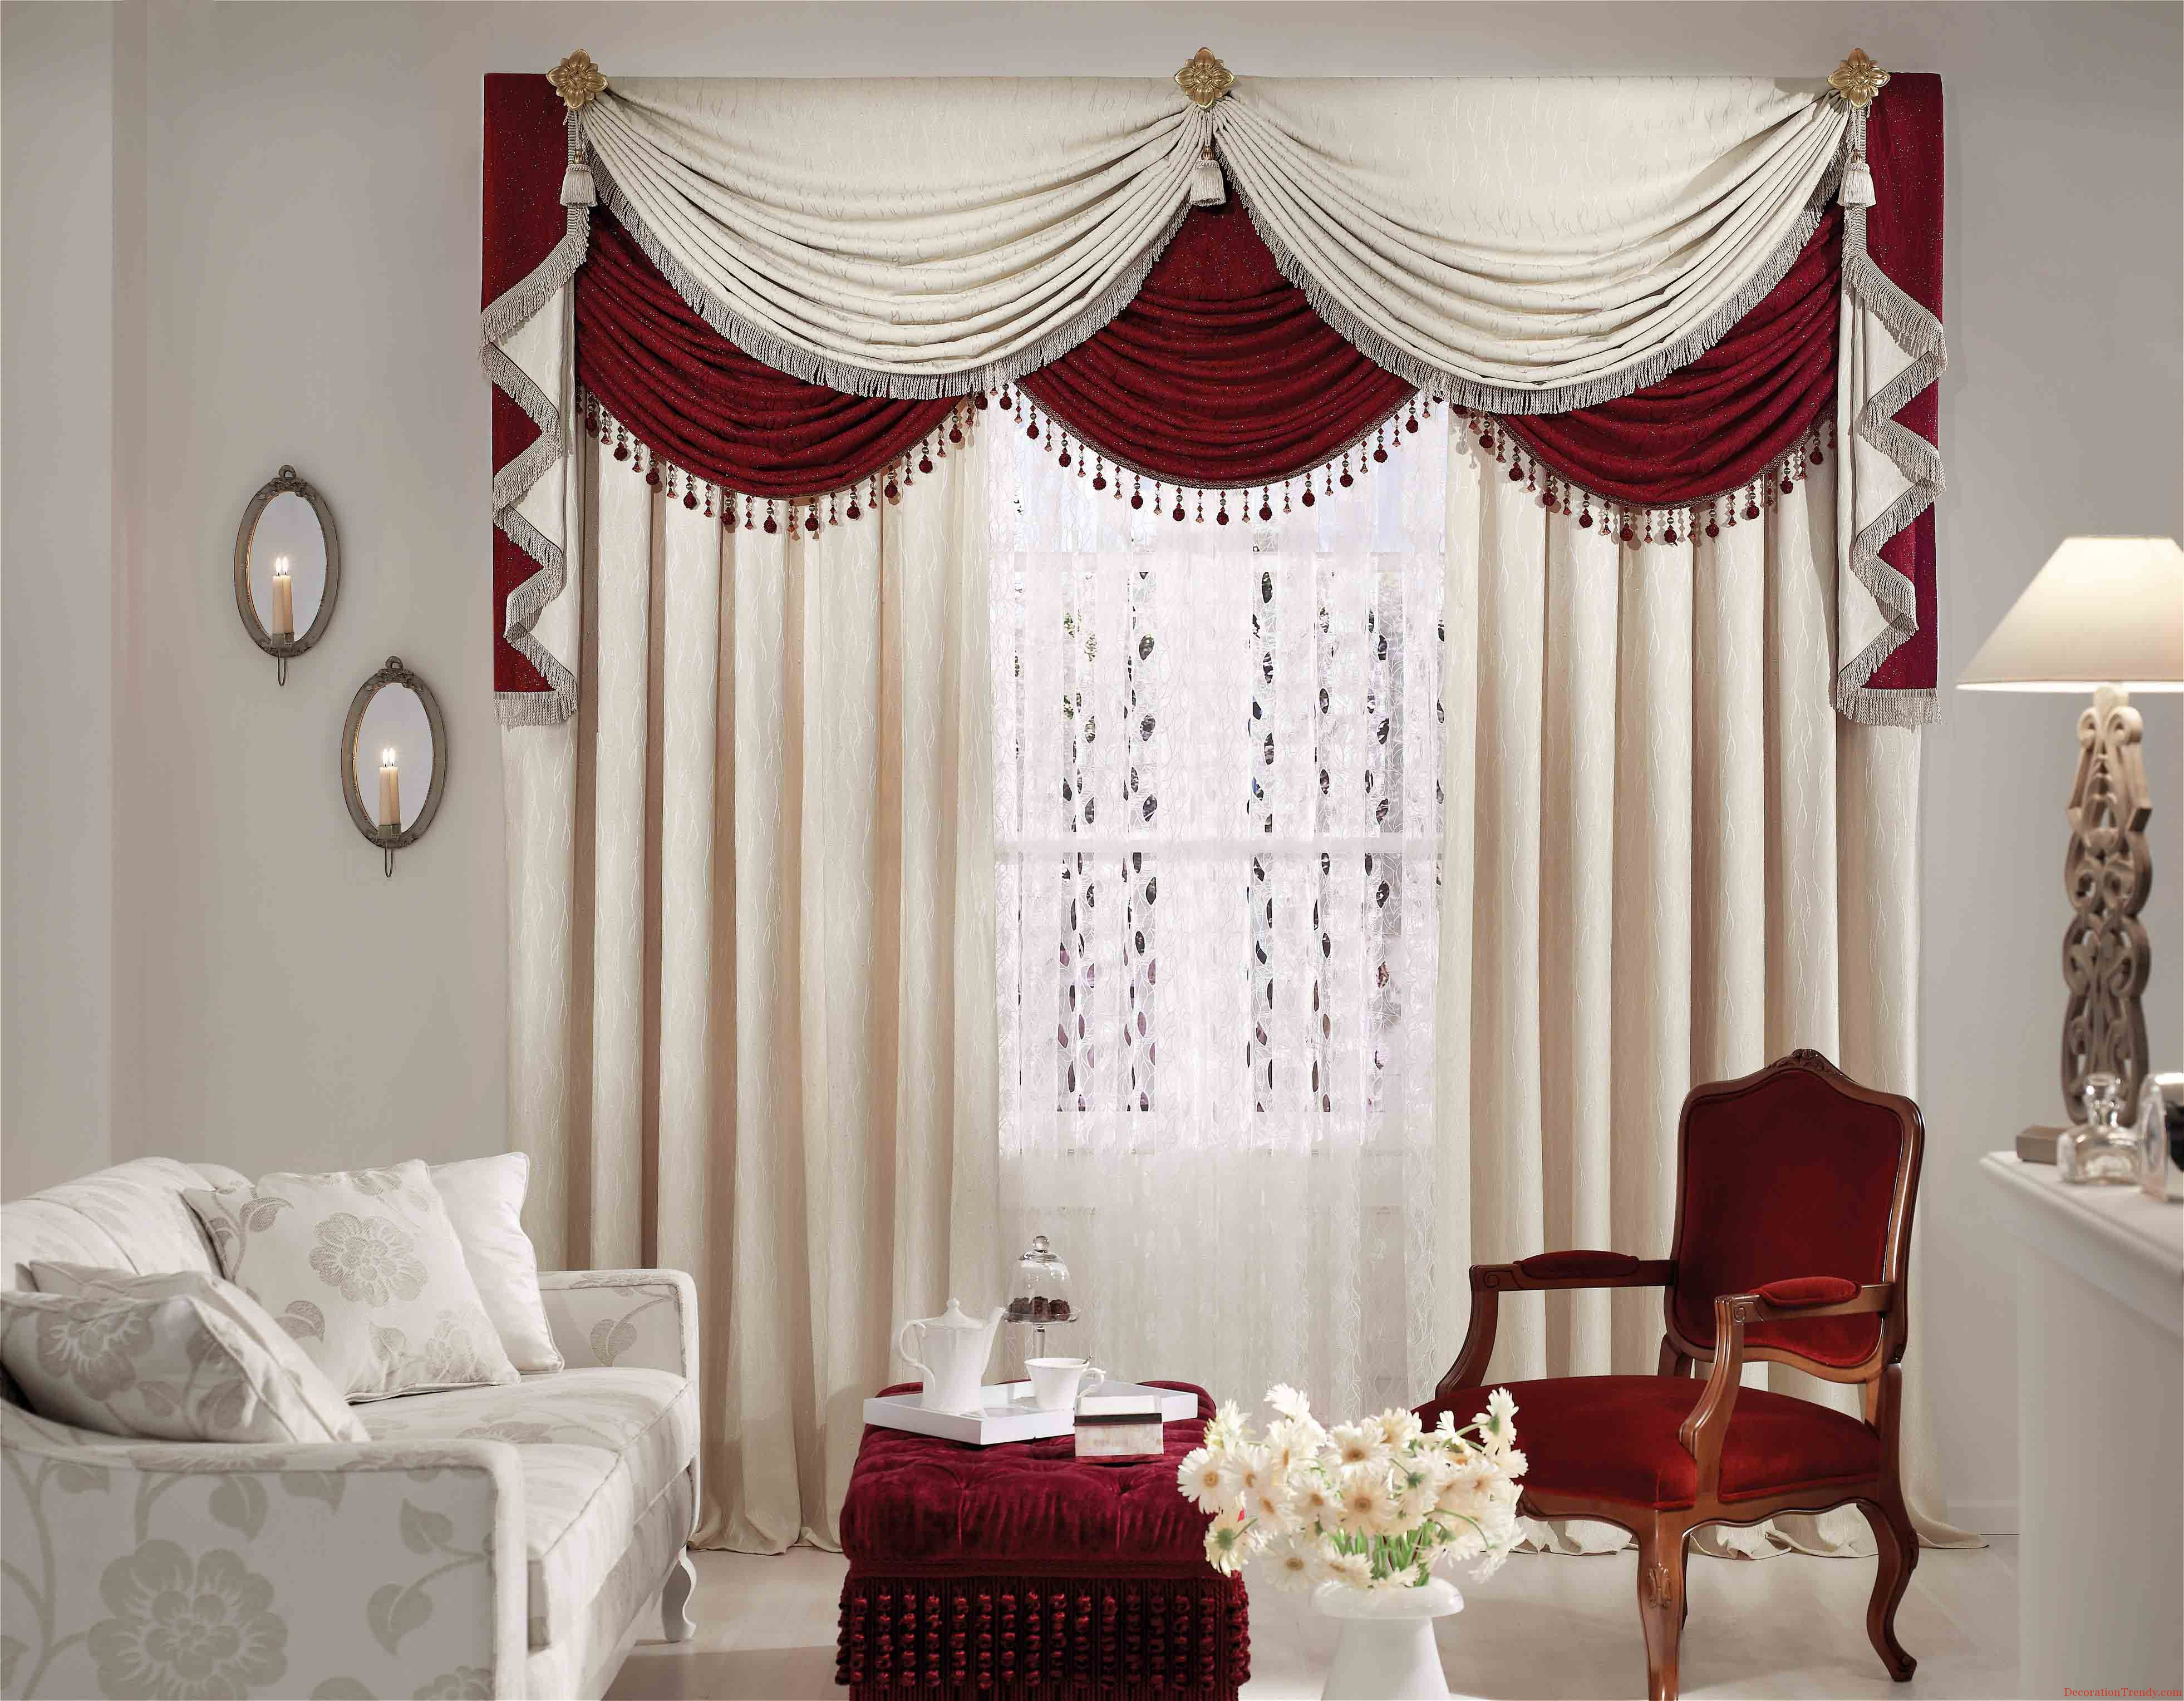 Modern Curtains Designs 2015 Go For A Beautiful Curtain Design Darbylanefurniture